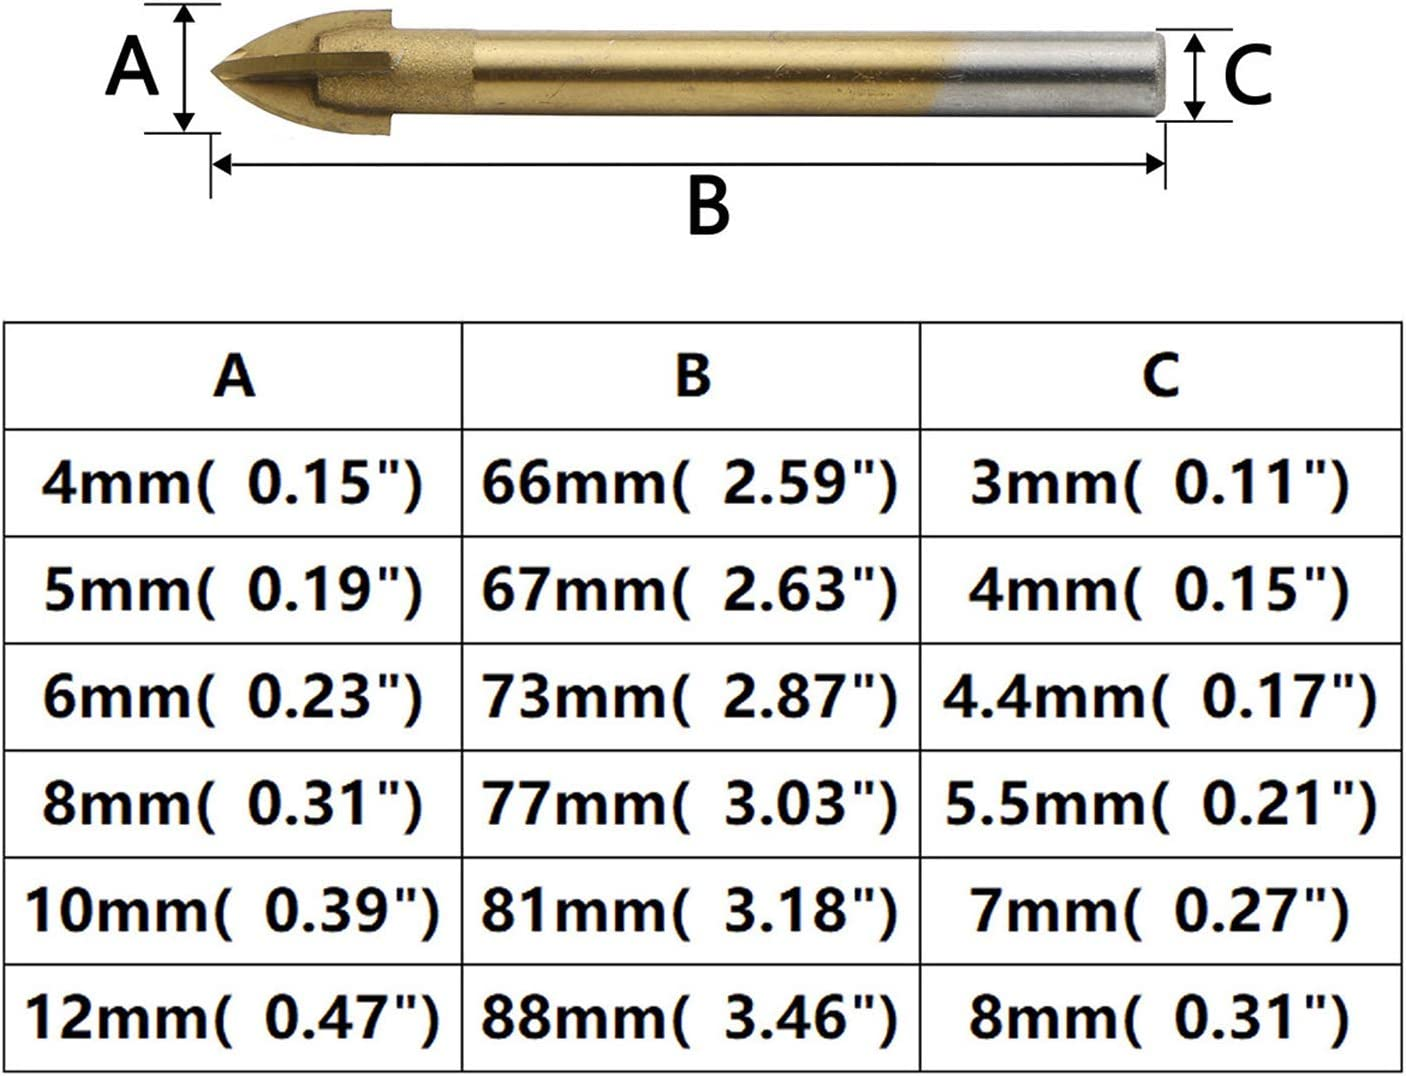 JIUWU 6pcs Cross Spear Head Tile Drill Bits Titanium Coated Glass Hole Opener Round Shank Cutting Tool for Ceramic Tile Marble Mirror and Glass 4mm 5mm 6mm 8mm 10mm 12mm